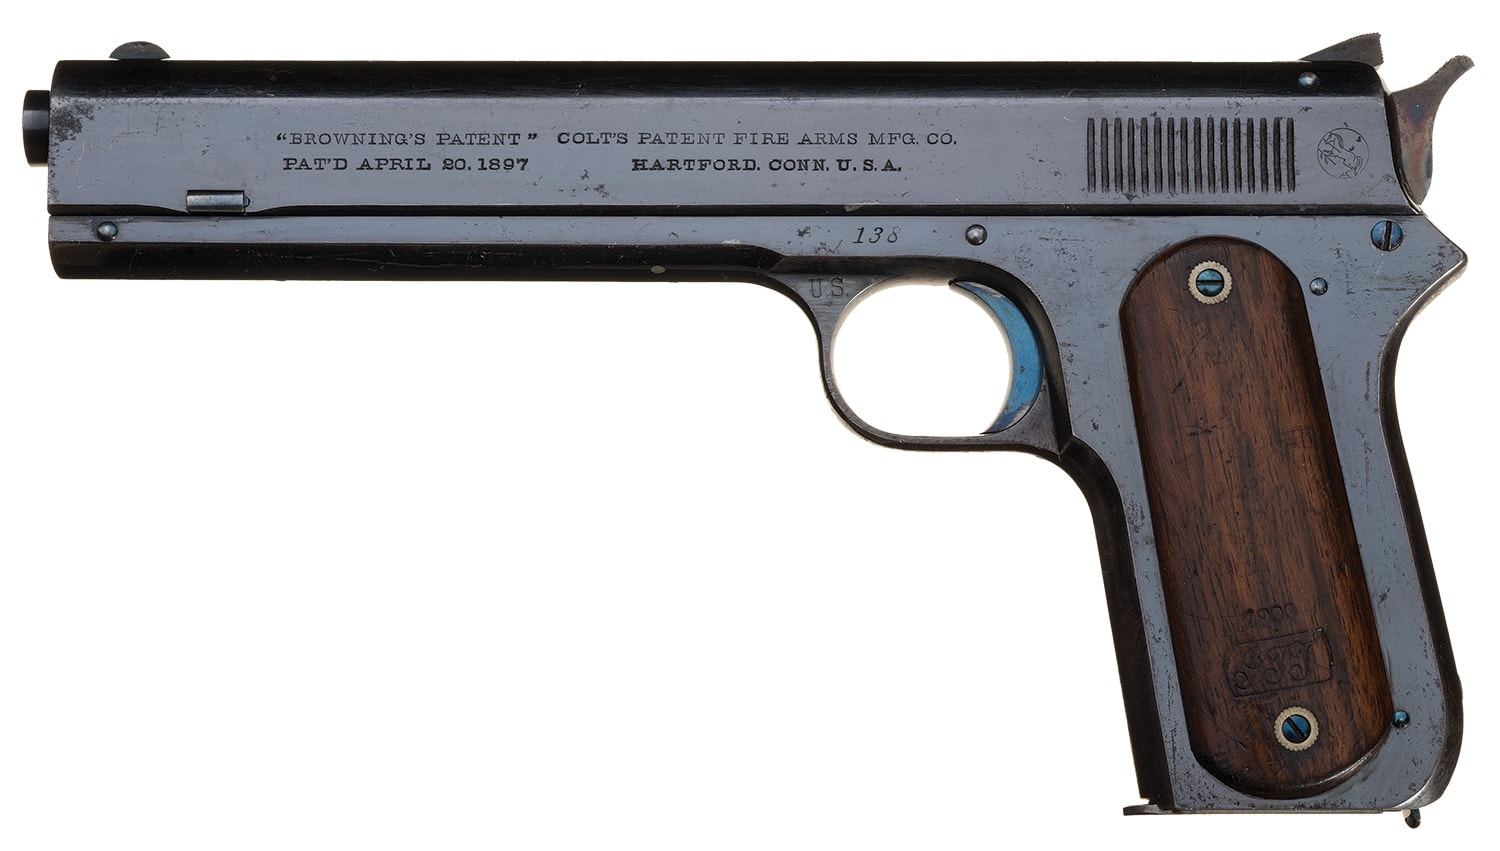 Colt Model 1900 Automatic us army